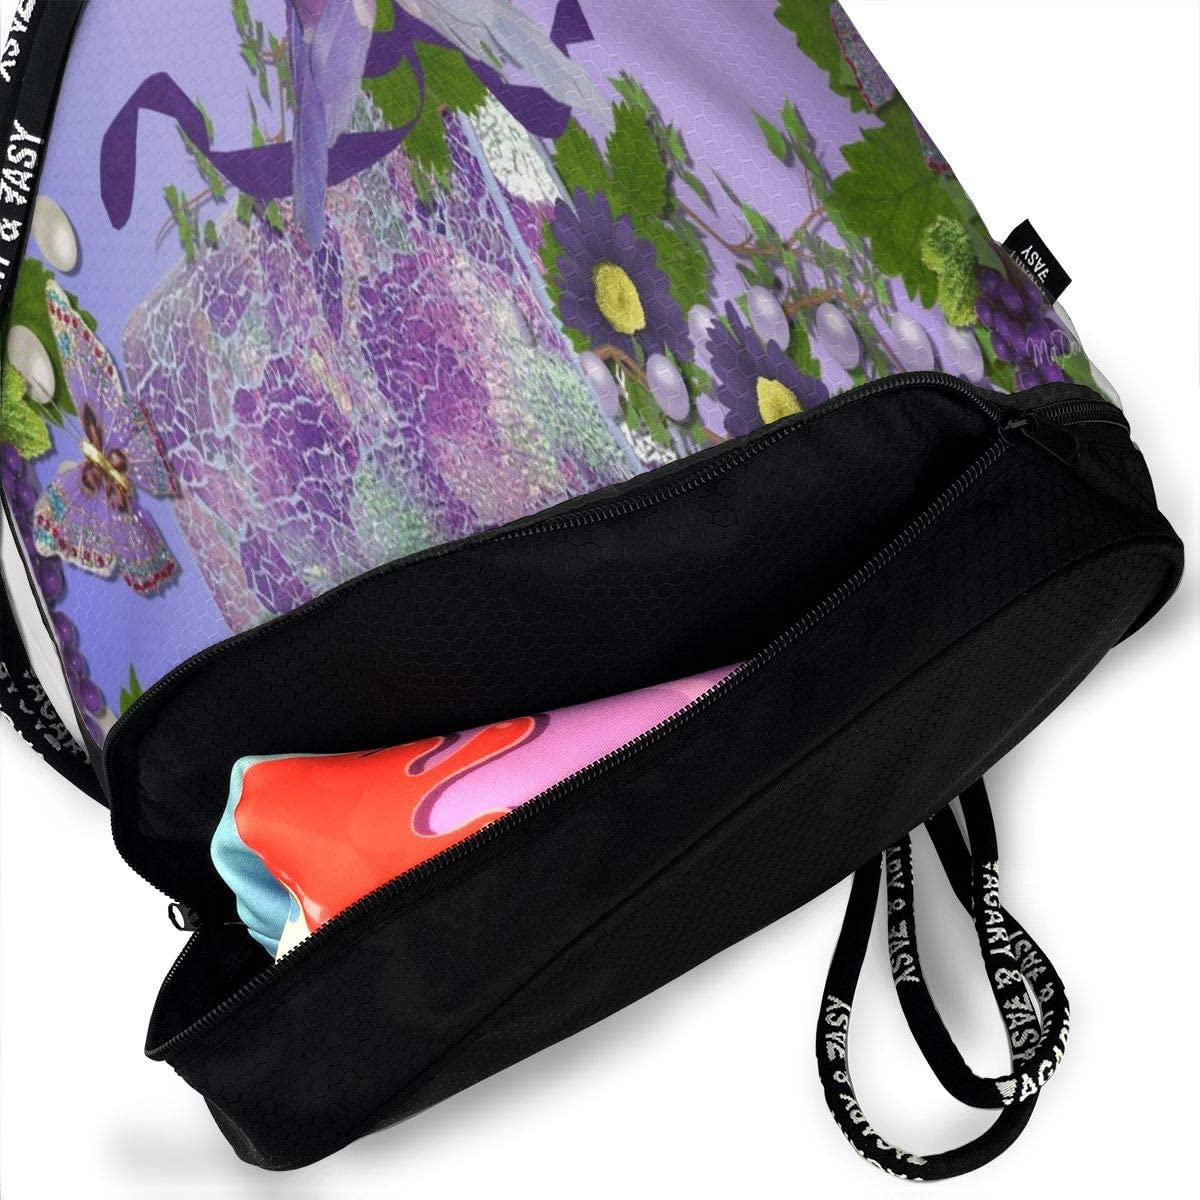 Unisex Bundle Backpack Purple Love Birds And Flower Travel Durable Large Space Fantastic Waterproof Drawstring Bag